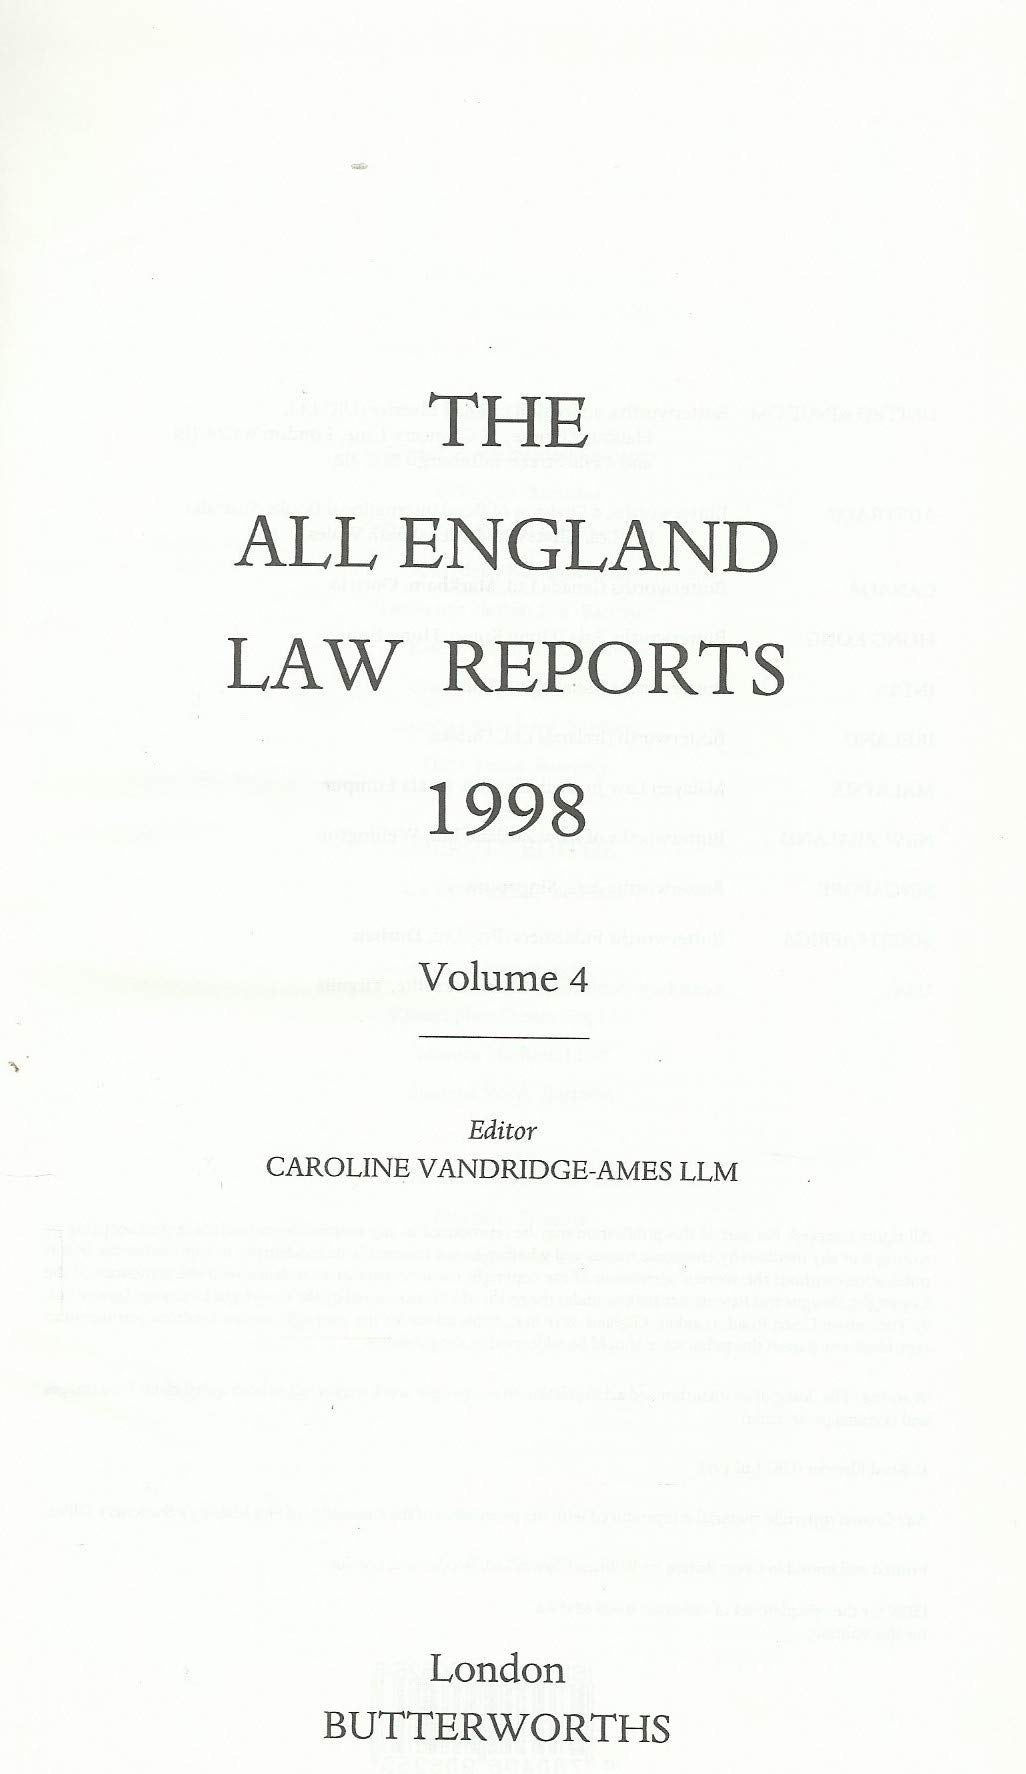 The All England Law Reports 1998: Vol 4